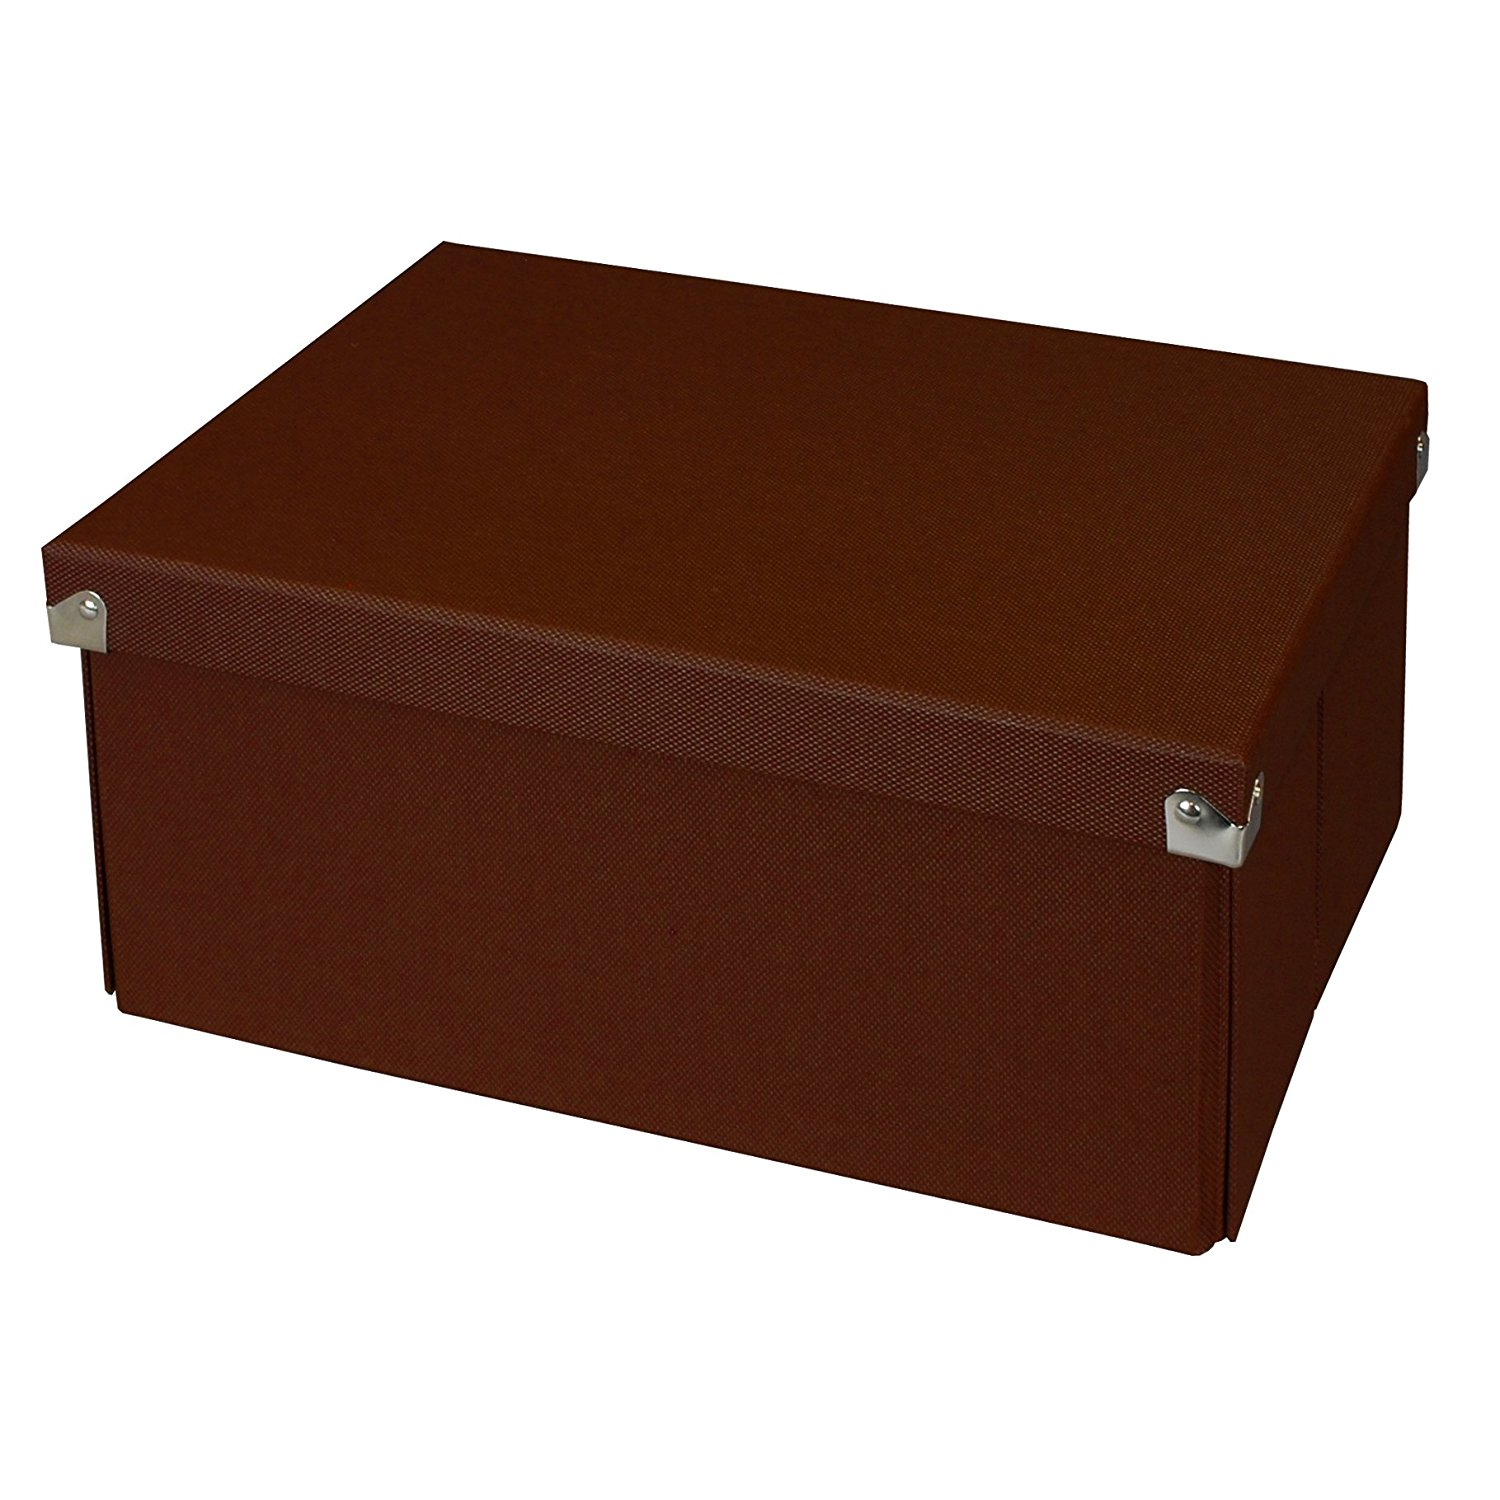 pop nu0027 store decorative storage box with lid collapsible and stackable medium document